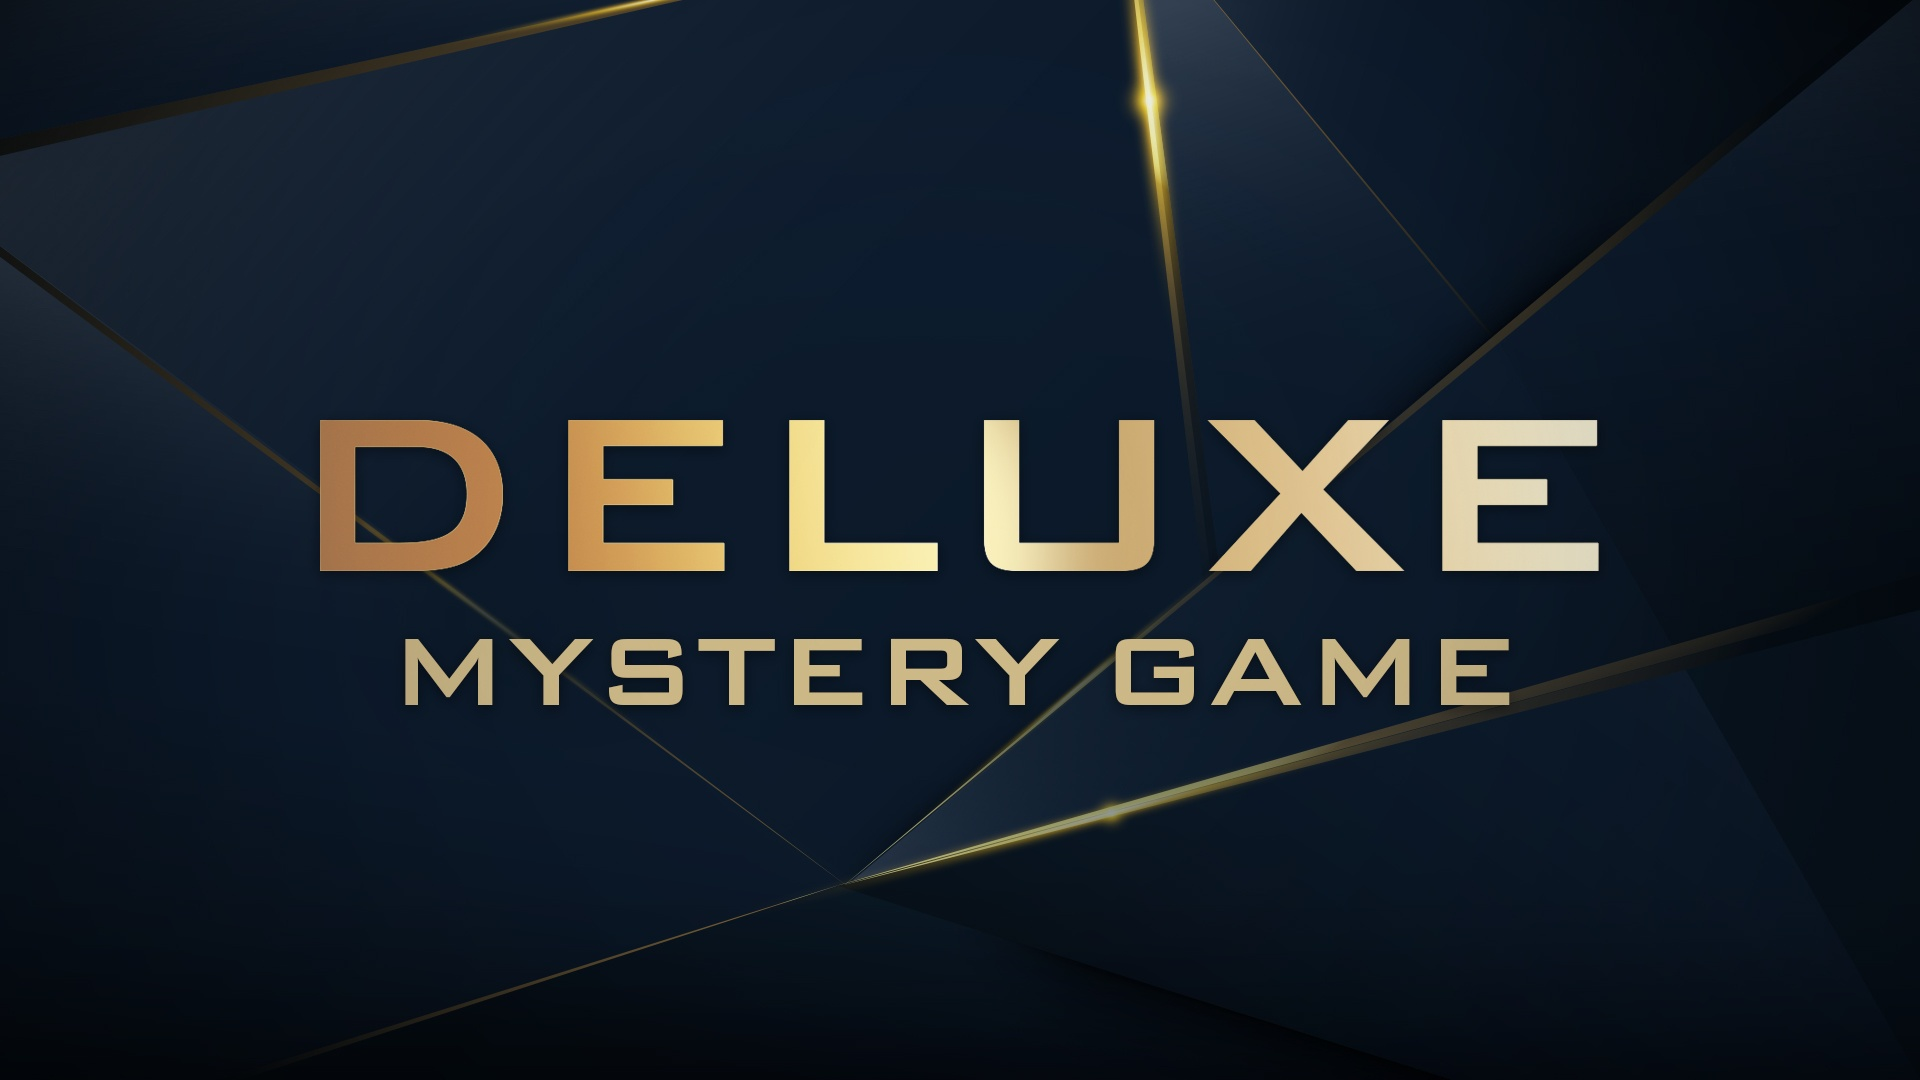 Deluxe Mystery Game | Steam Game Bundle | Fanatical